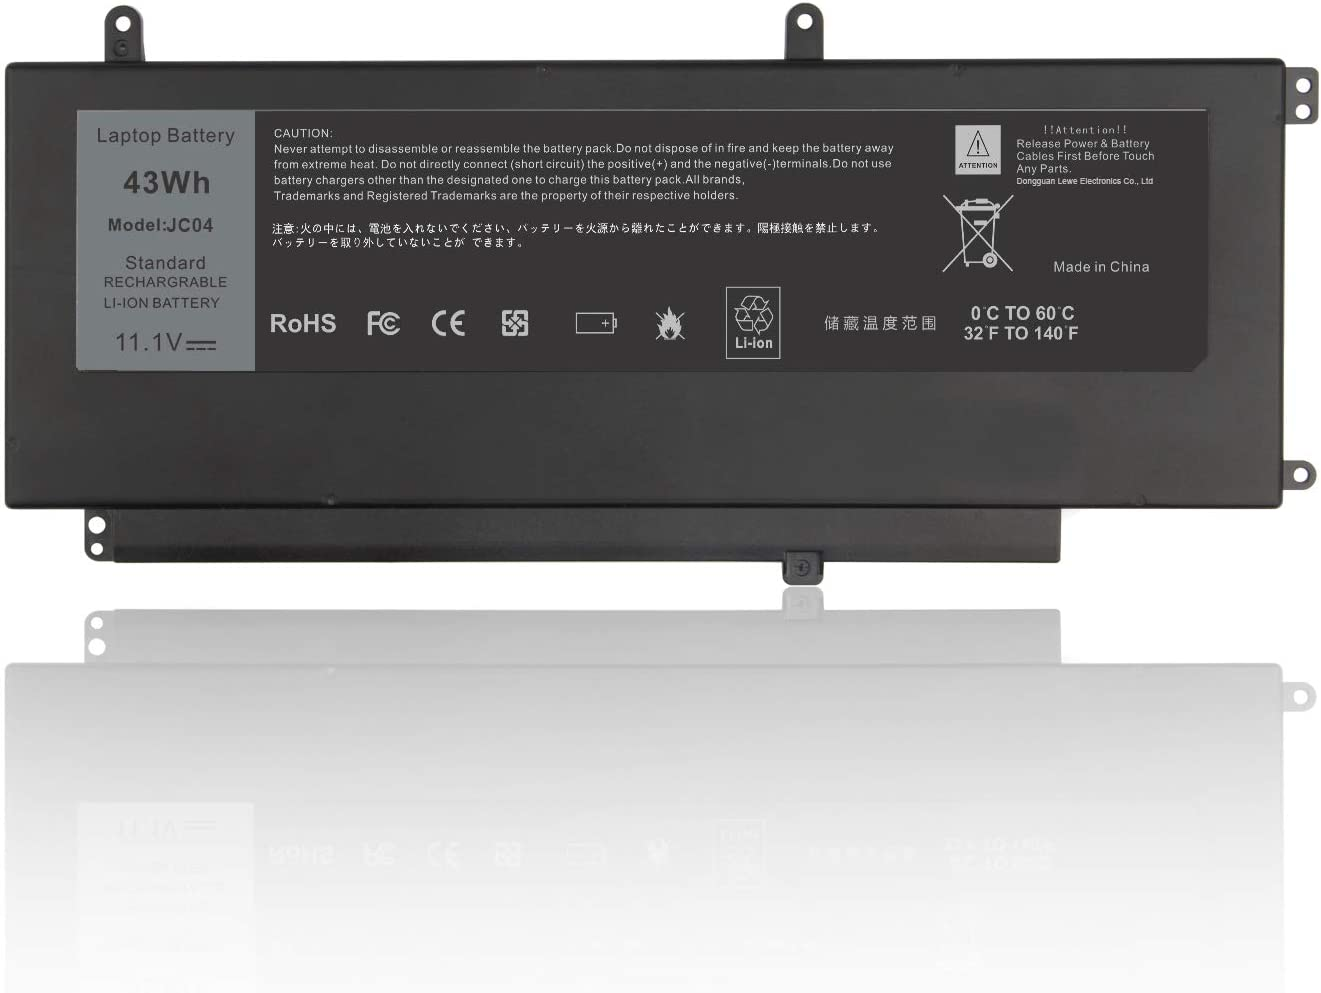 D2VF9 Laptop Battery Replacement for Dell Inspiron 15 7547 7548 0PXR51 PXR51